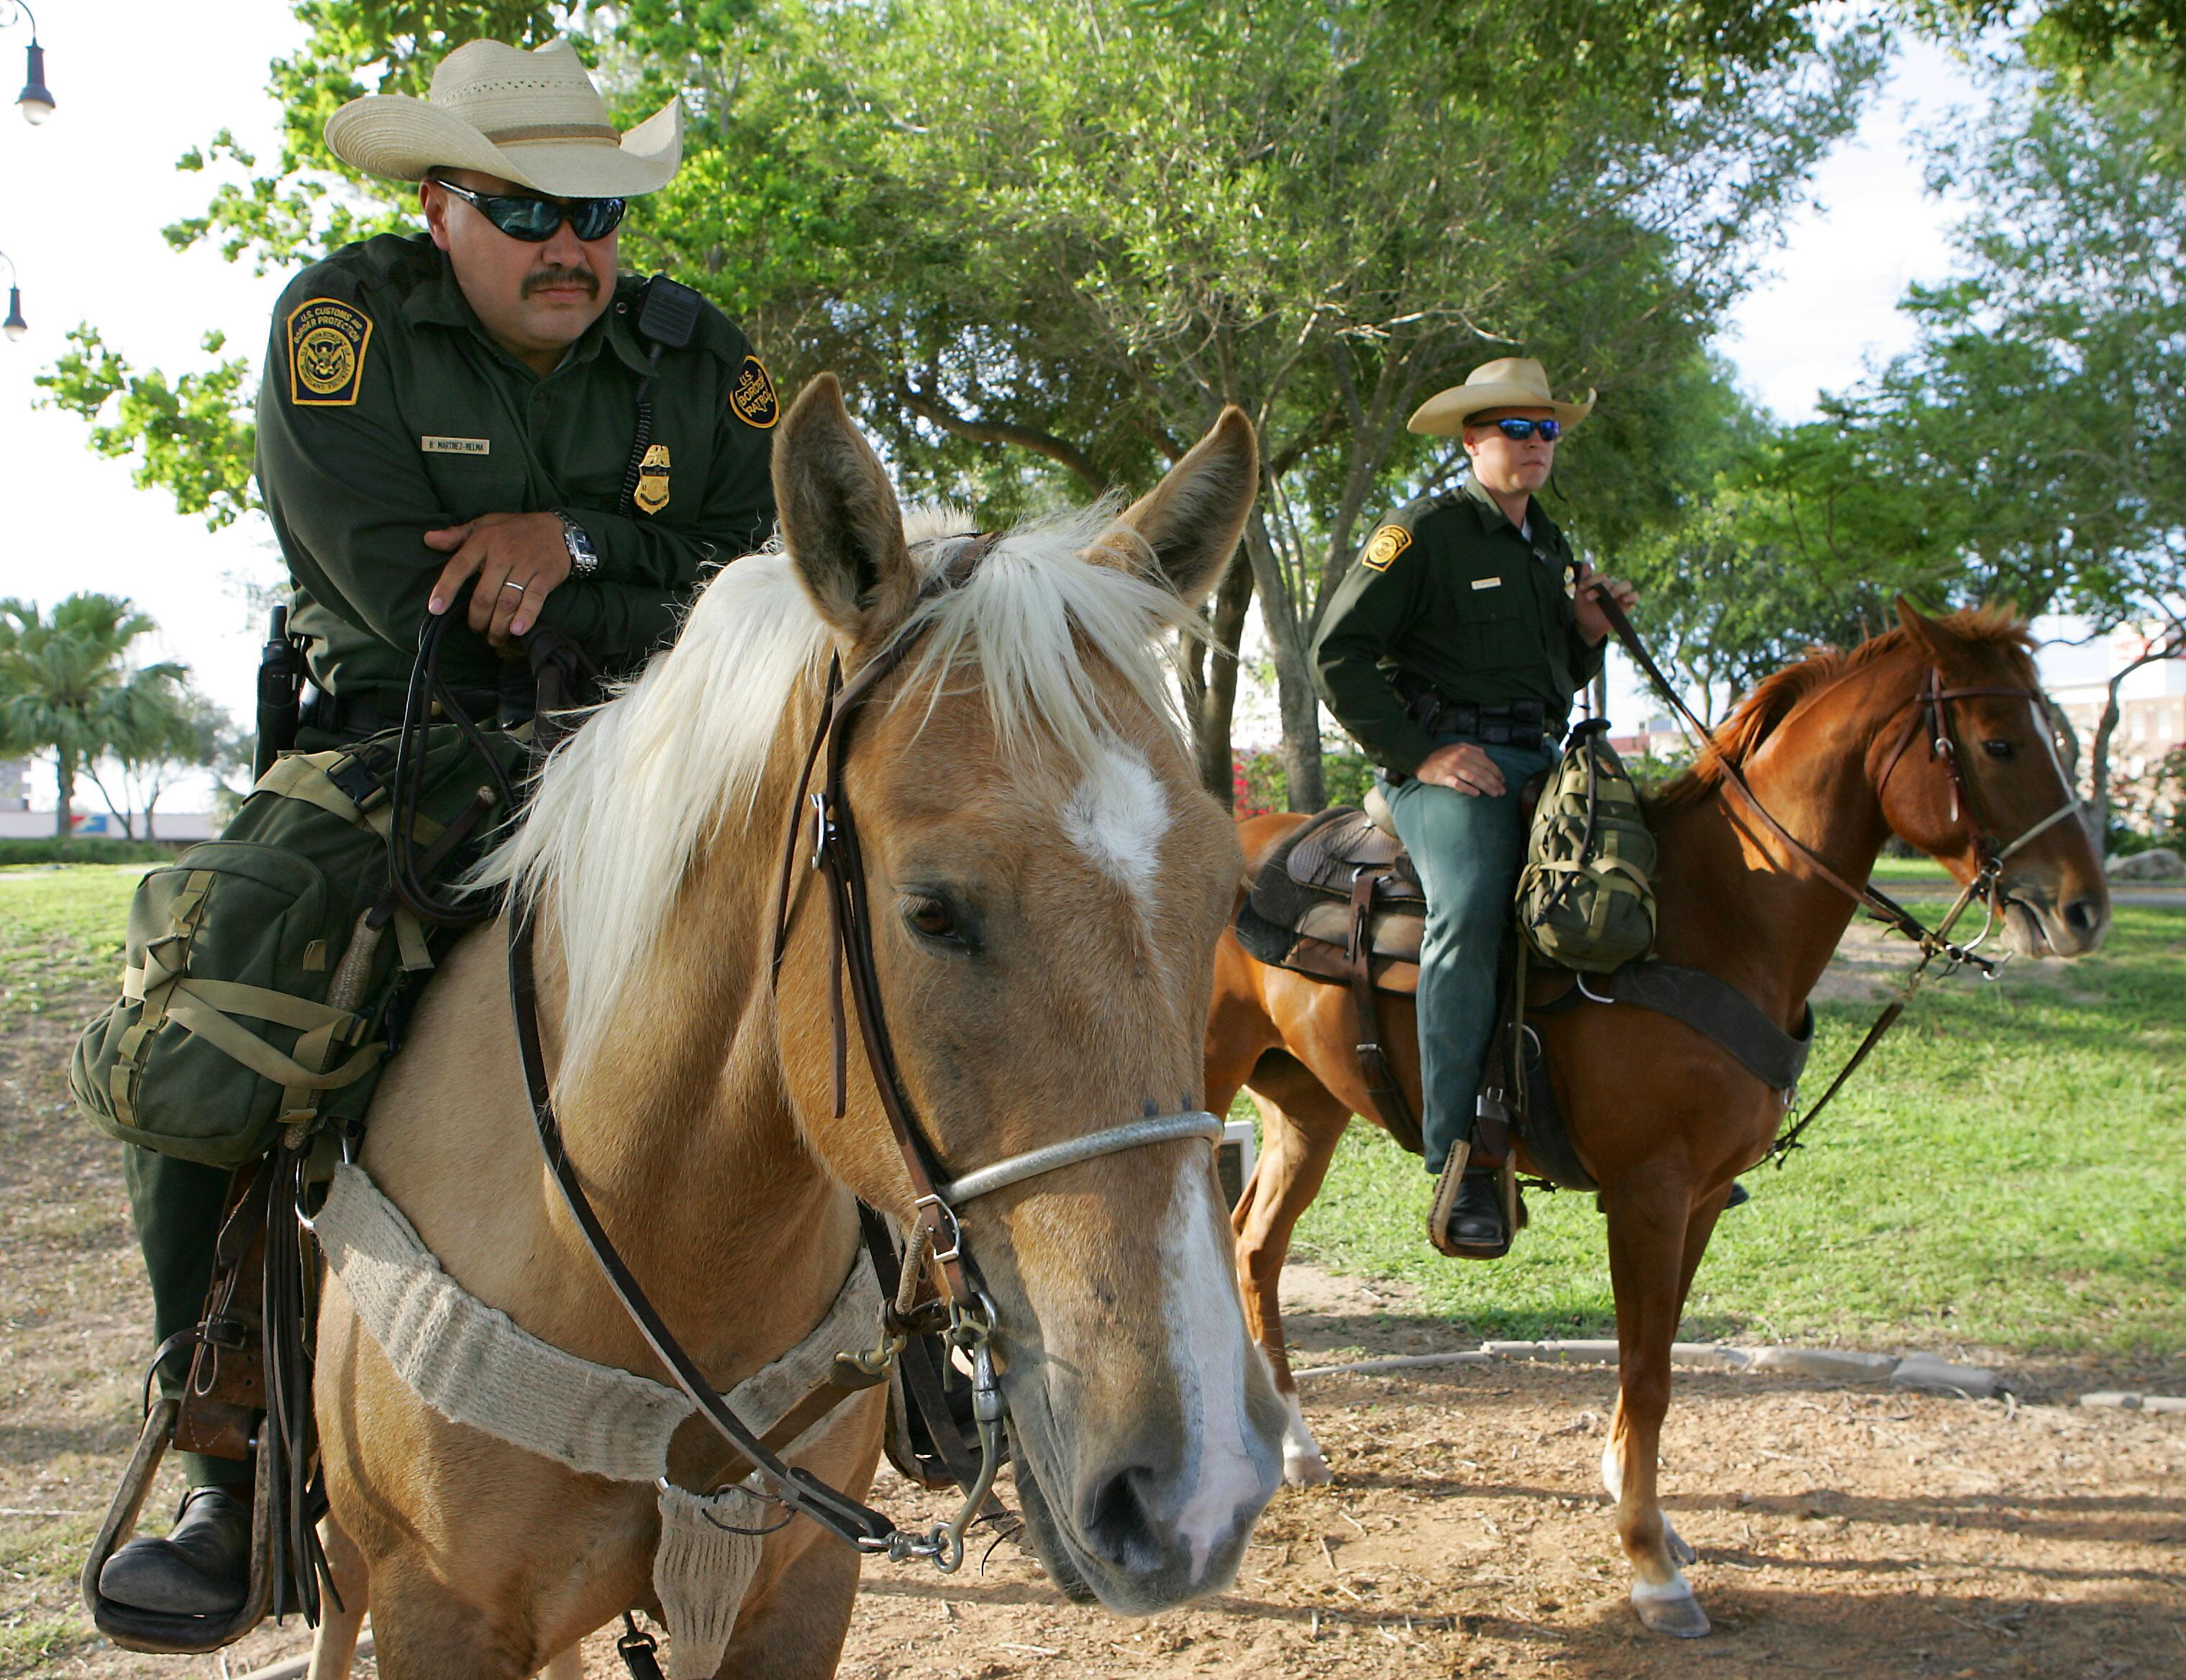 U.S. Border Patrol agents use horses in the most severe environments that regular vehicles cannot negotiate.